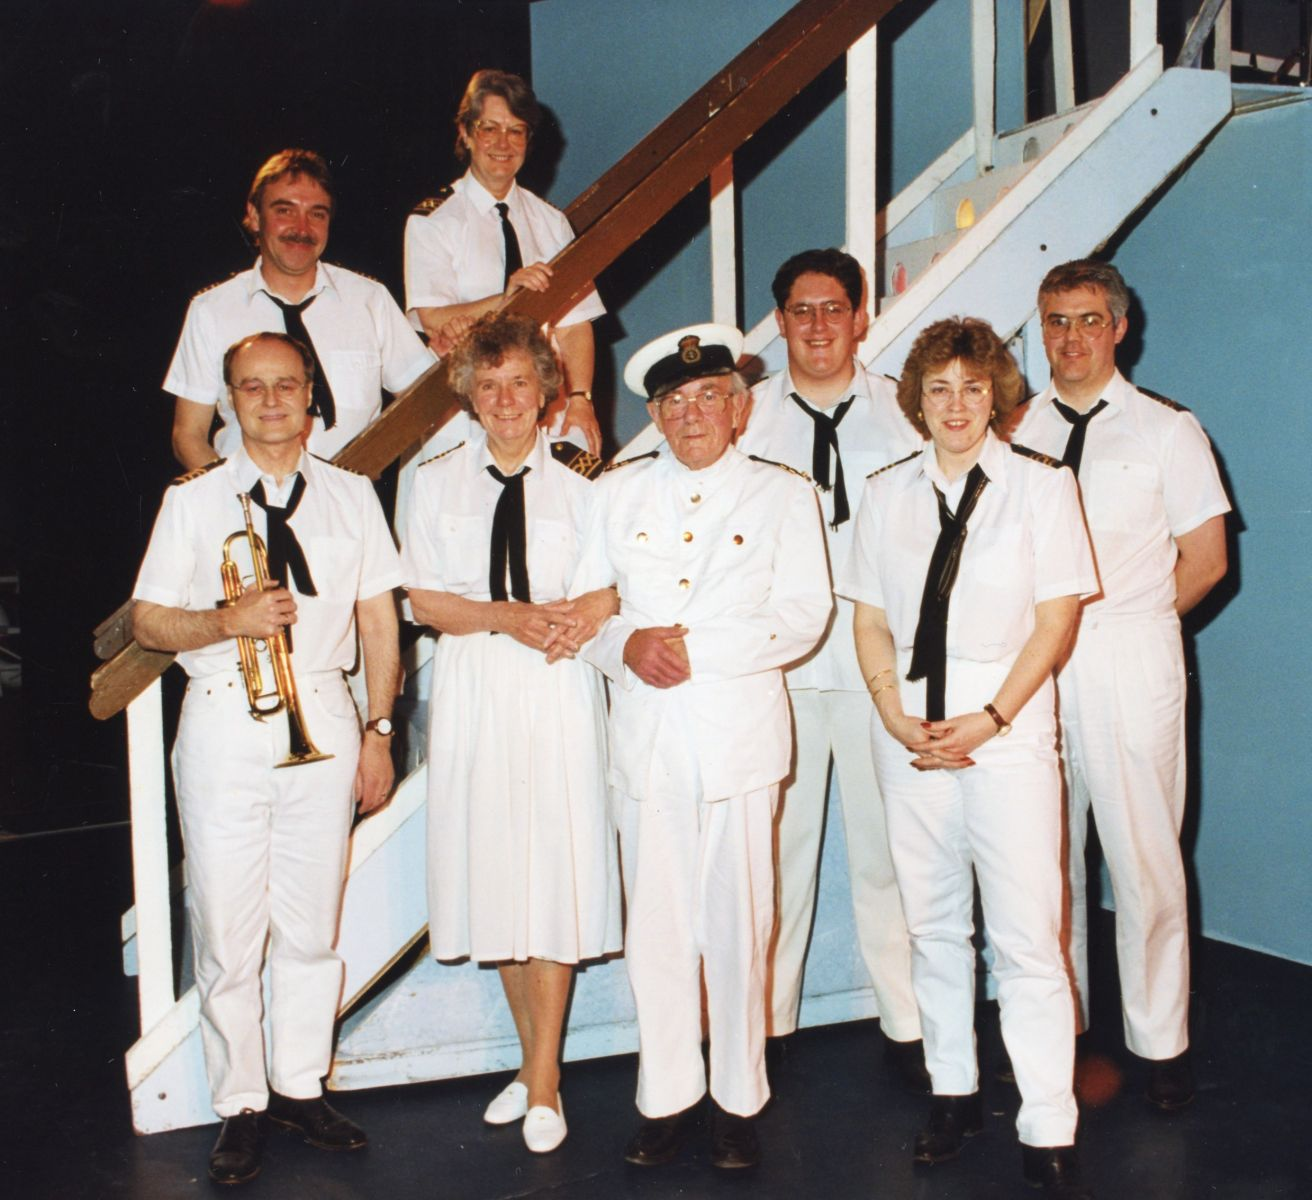 The Truro Amateur Operatic & Dramatic Society band